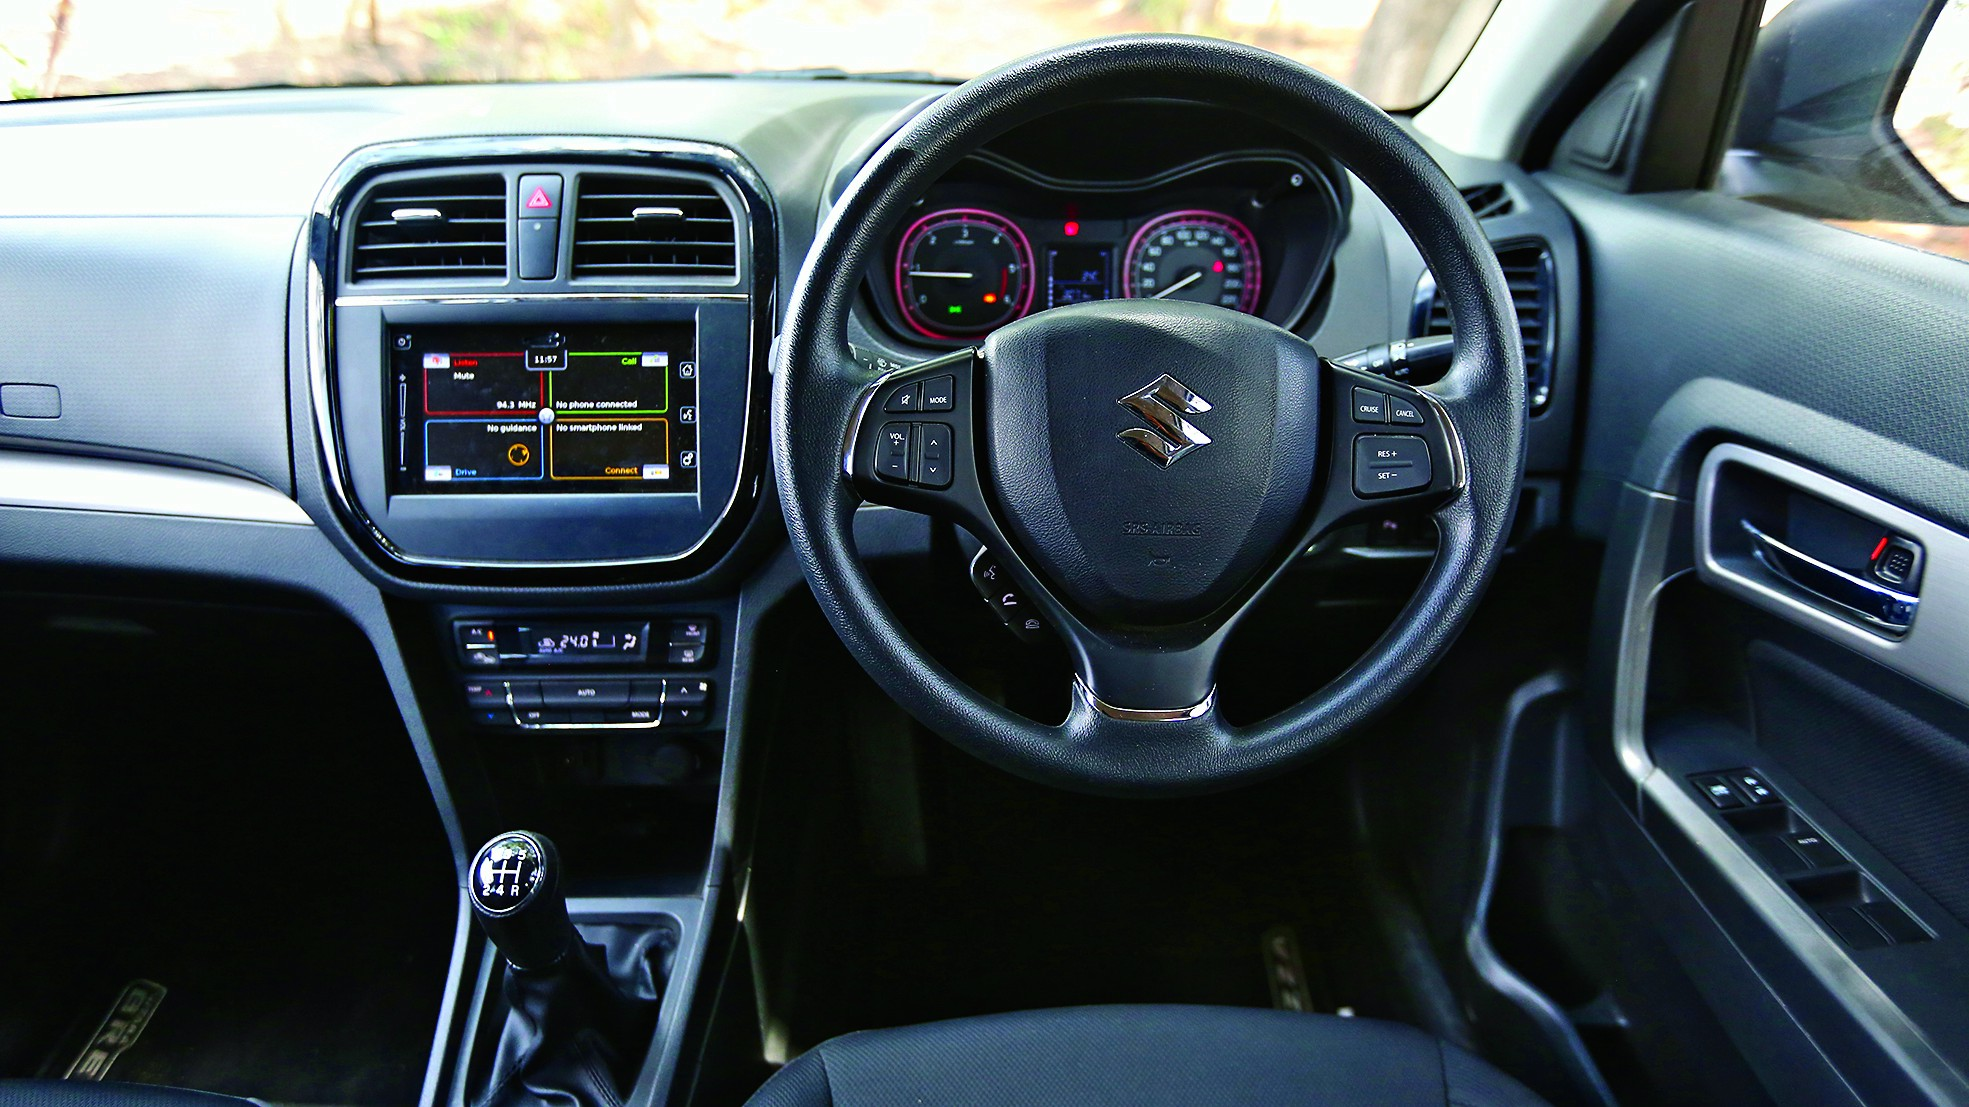 Colour car you drive - Interior Room Is Good With Generous Width For Three Passengers Sitting Abreast In The Rear Seat There S No Third Row Which Is Just As Well